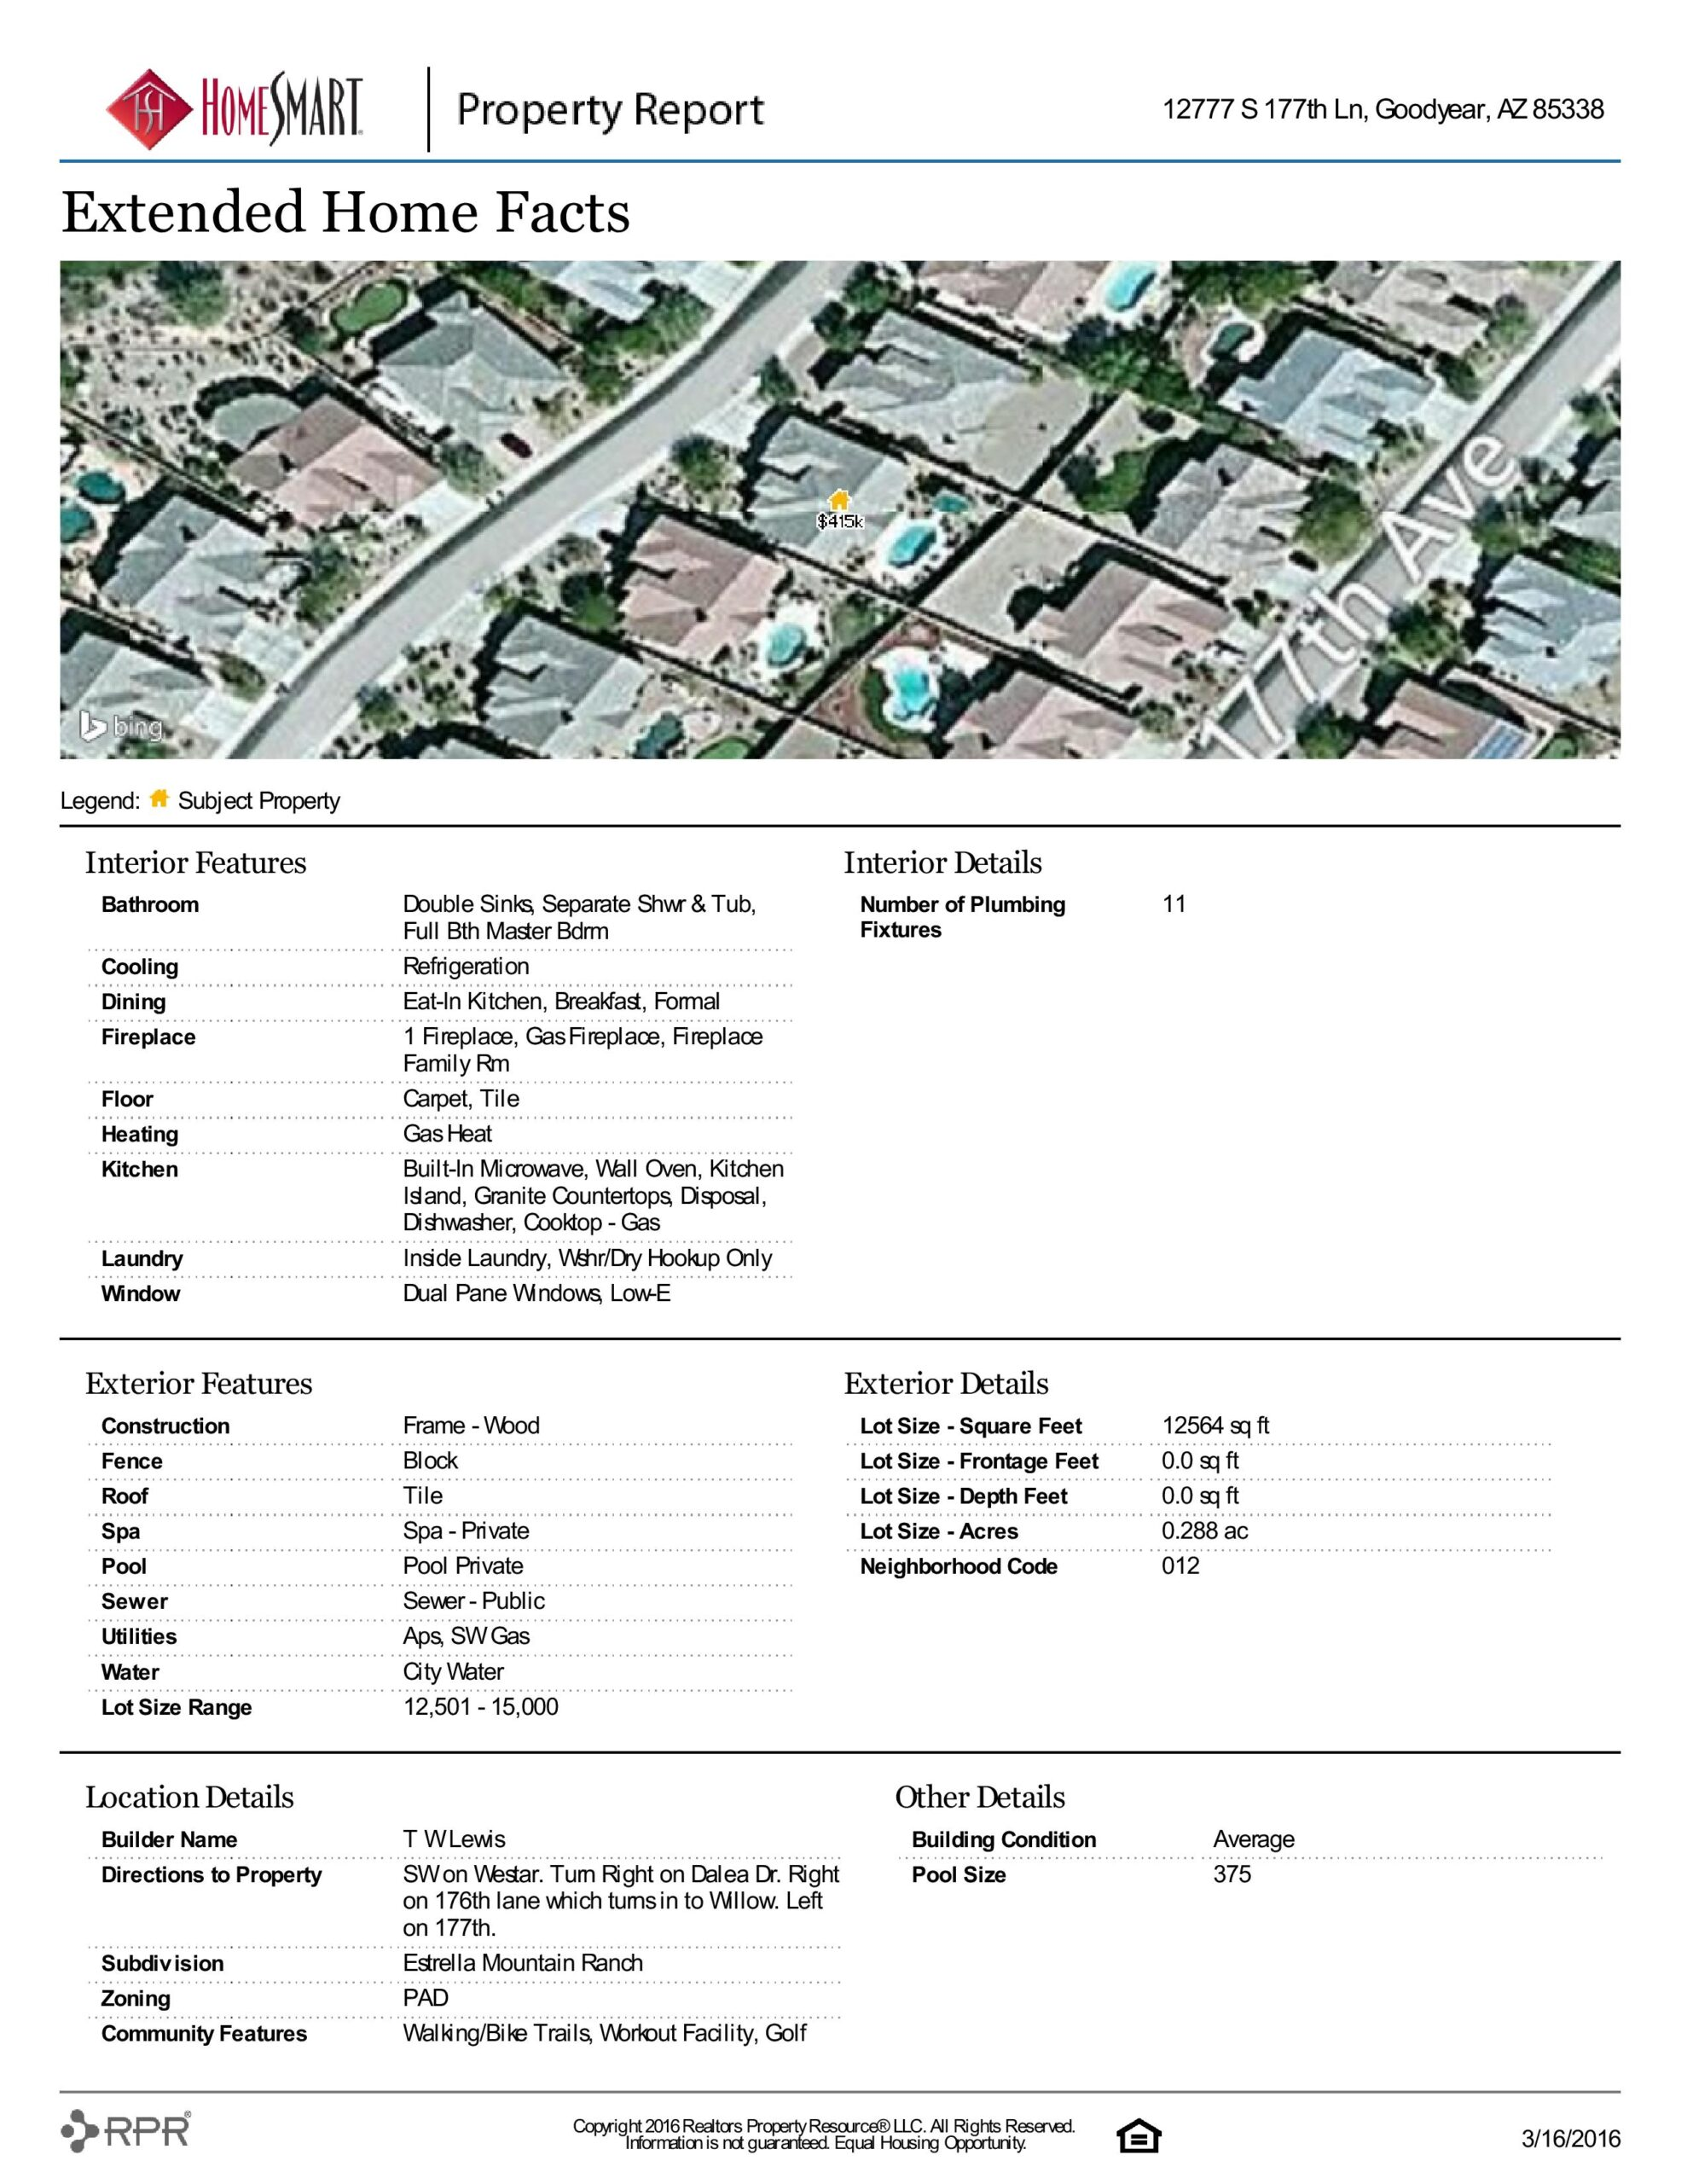 12777 S 177TH LANE PROPERTY REPORT-page-004